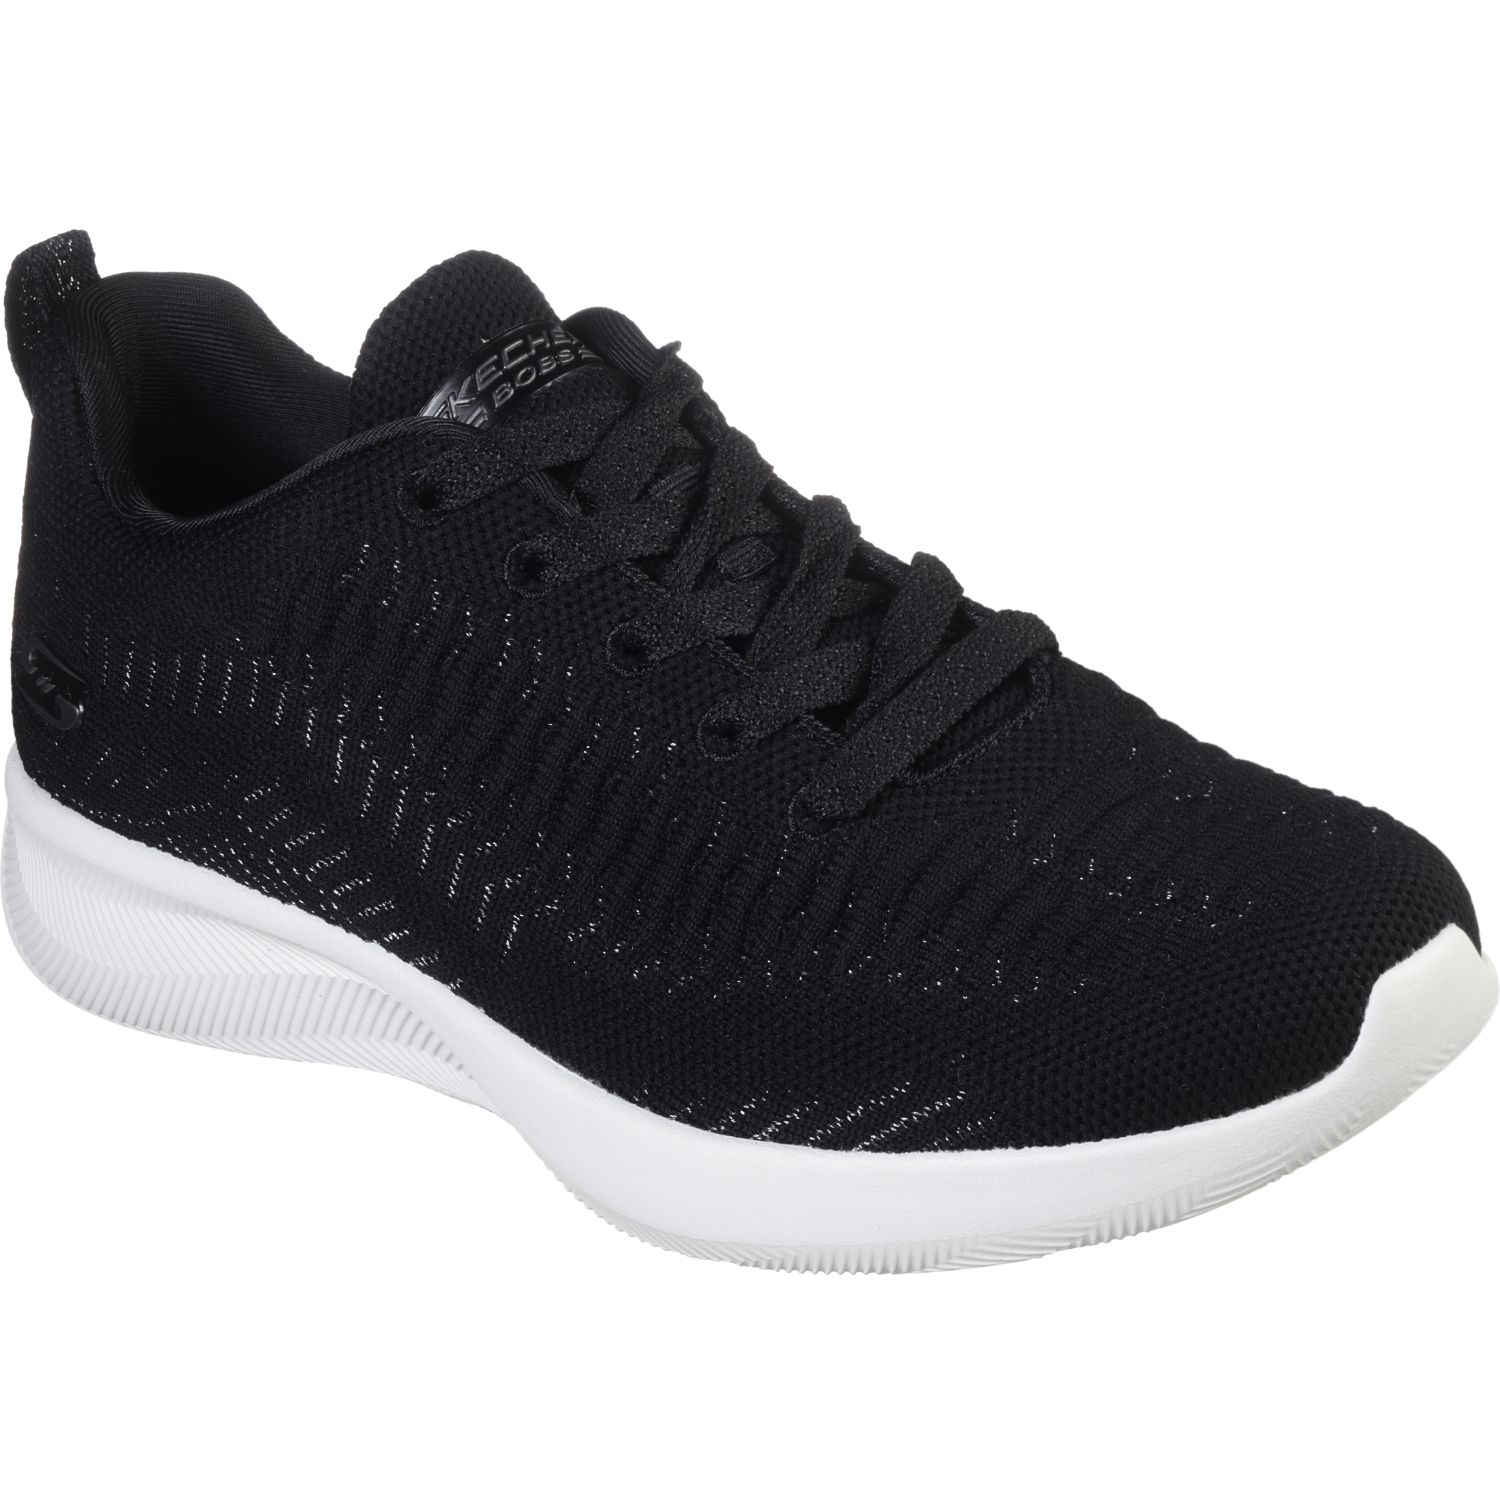 Skechers bobs squad 2 Negro Walking